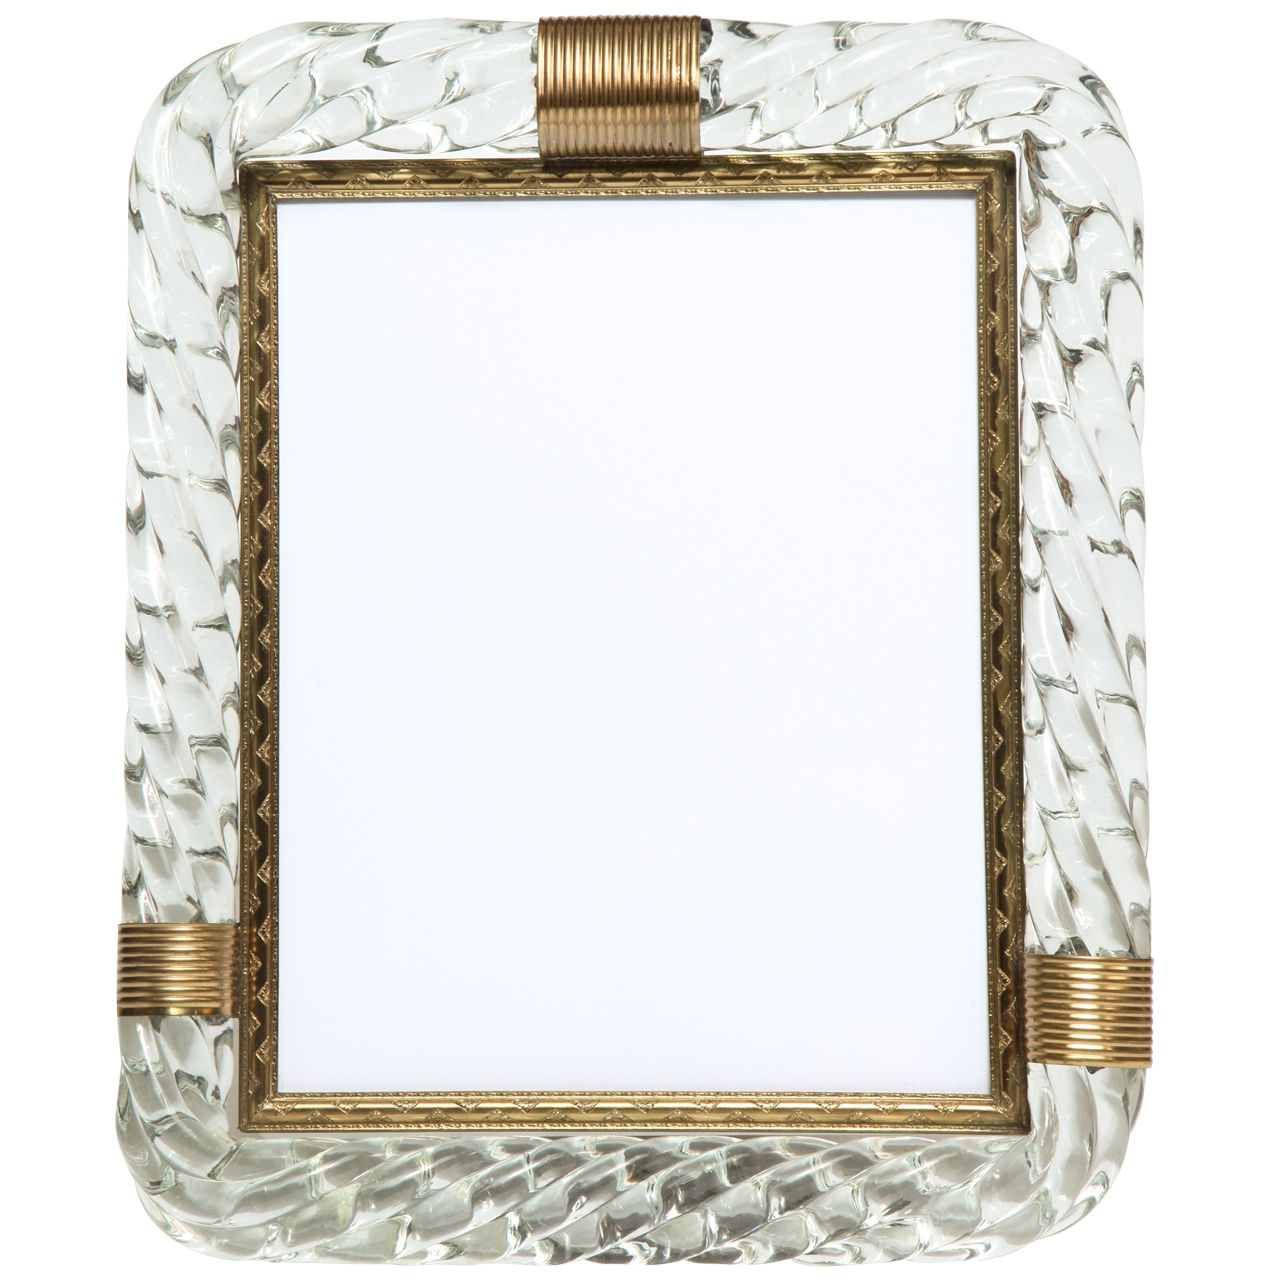 Murano Glass Rope Picture Frame with Brass Trim in the Manner of ...